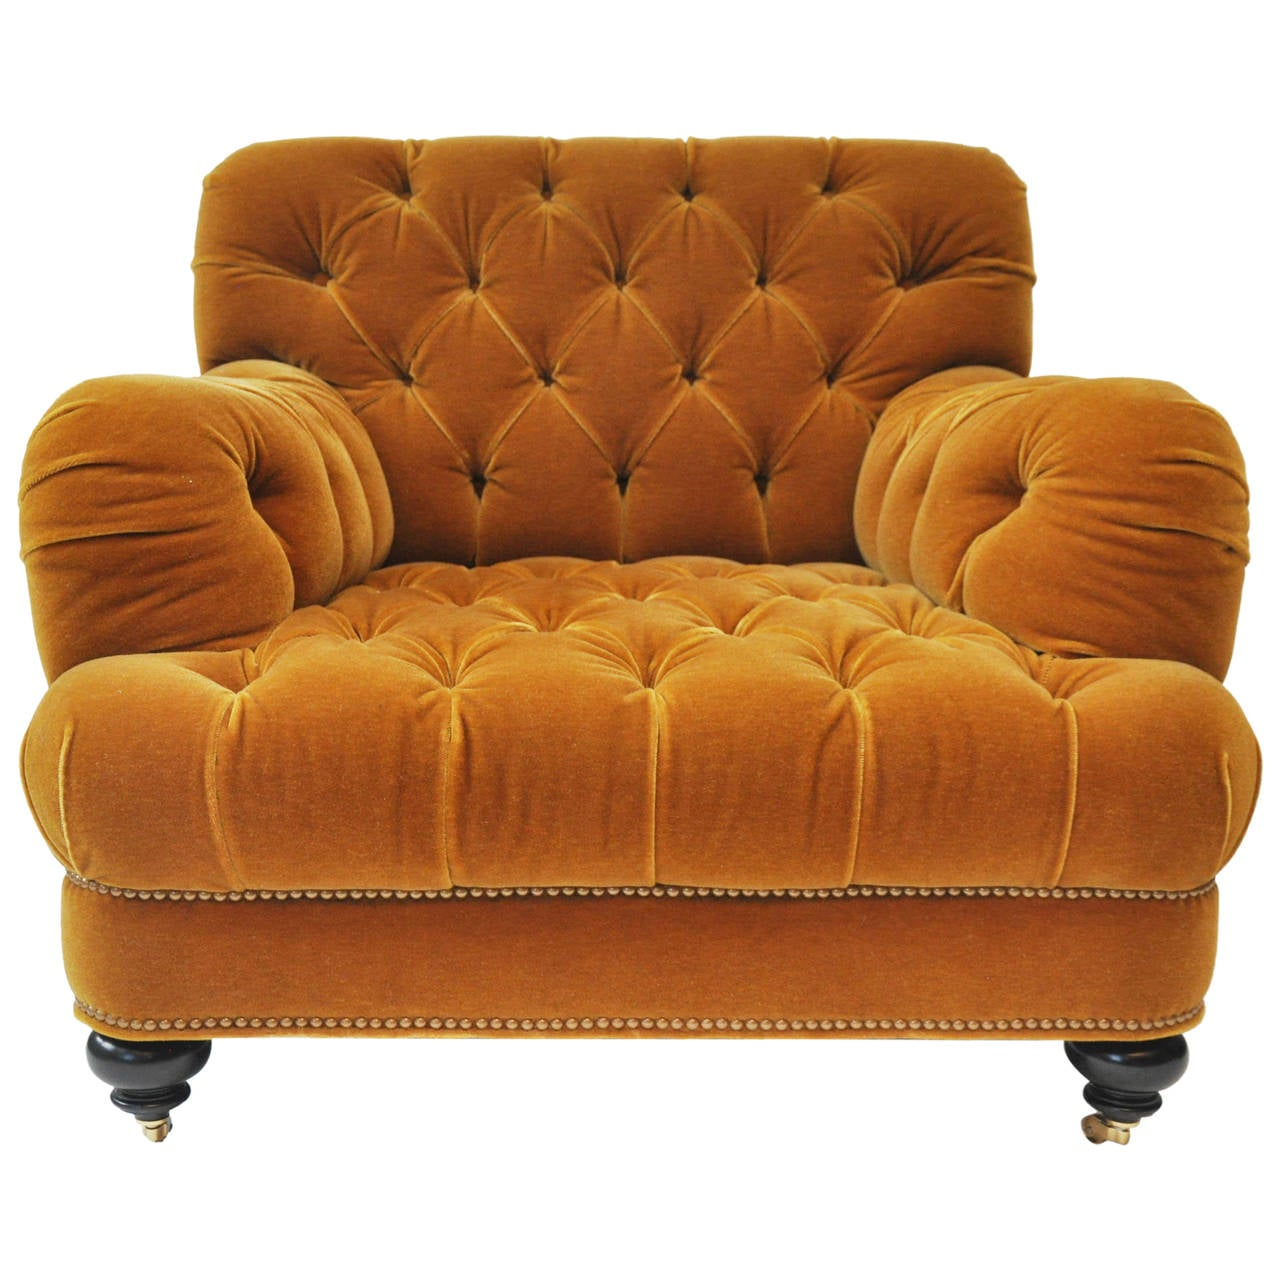 Unique Mohair Tufted Club Chair by John Boone at 1stdibs